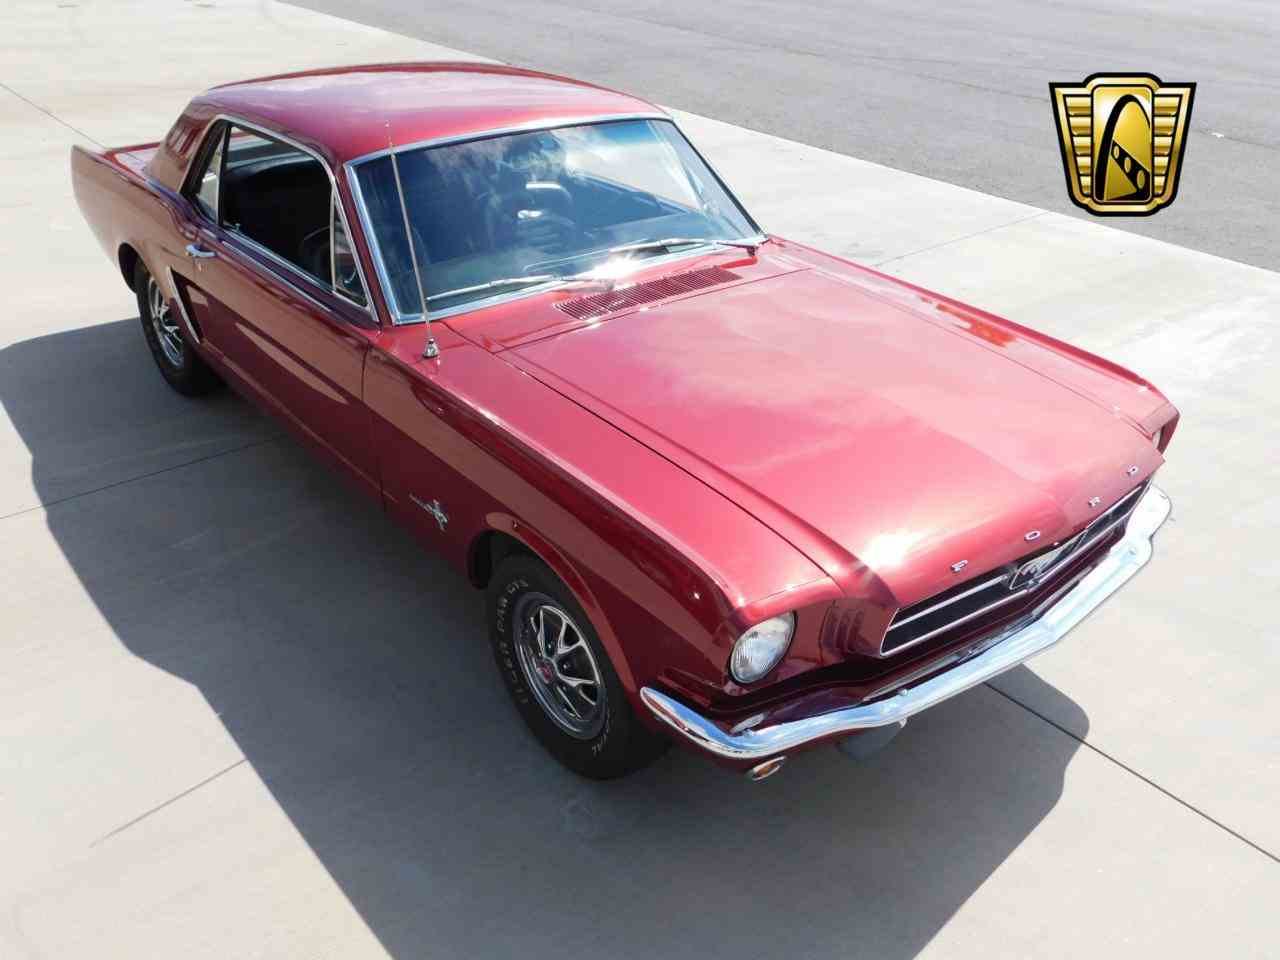 Large Picture of Classic 1965 Ford Mustang located in Georgia - $14,595.00 - LDV0